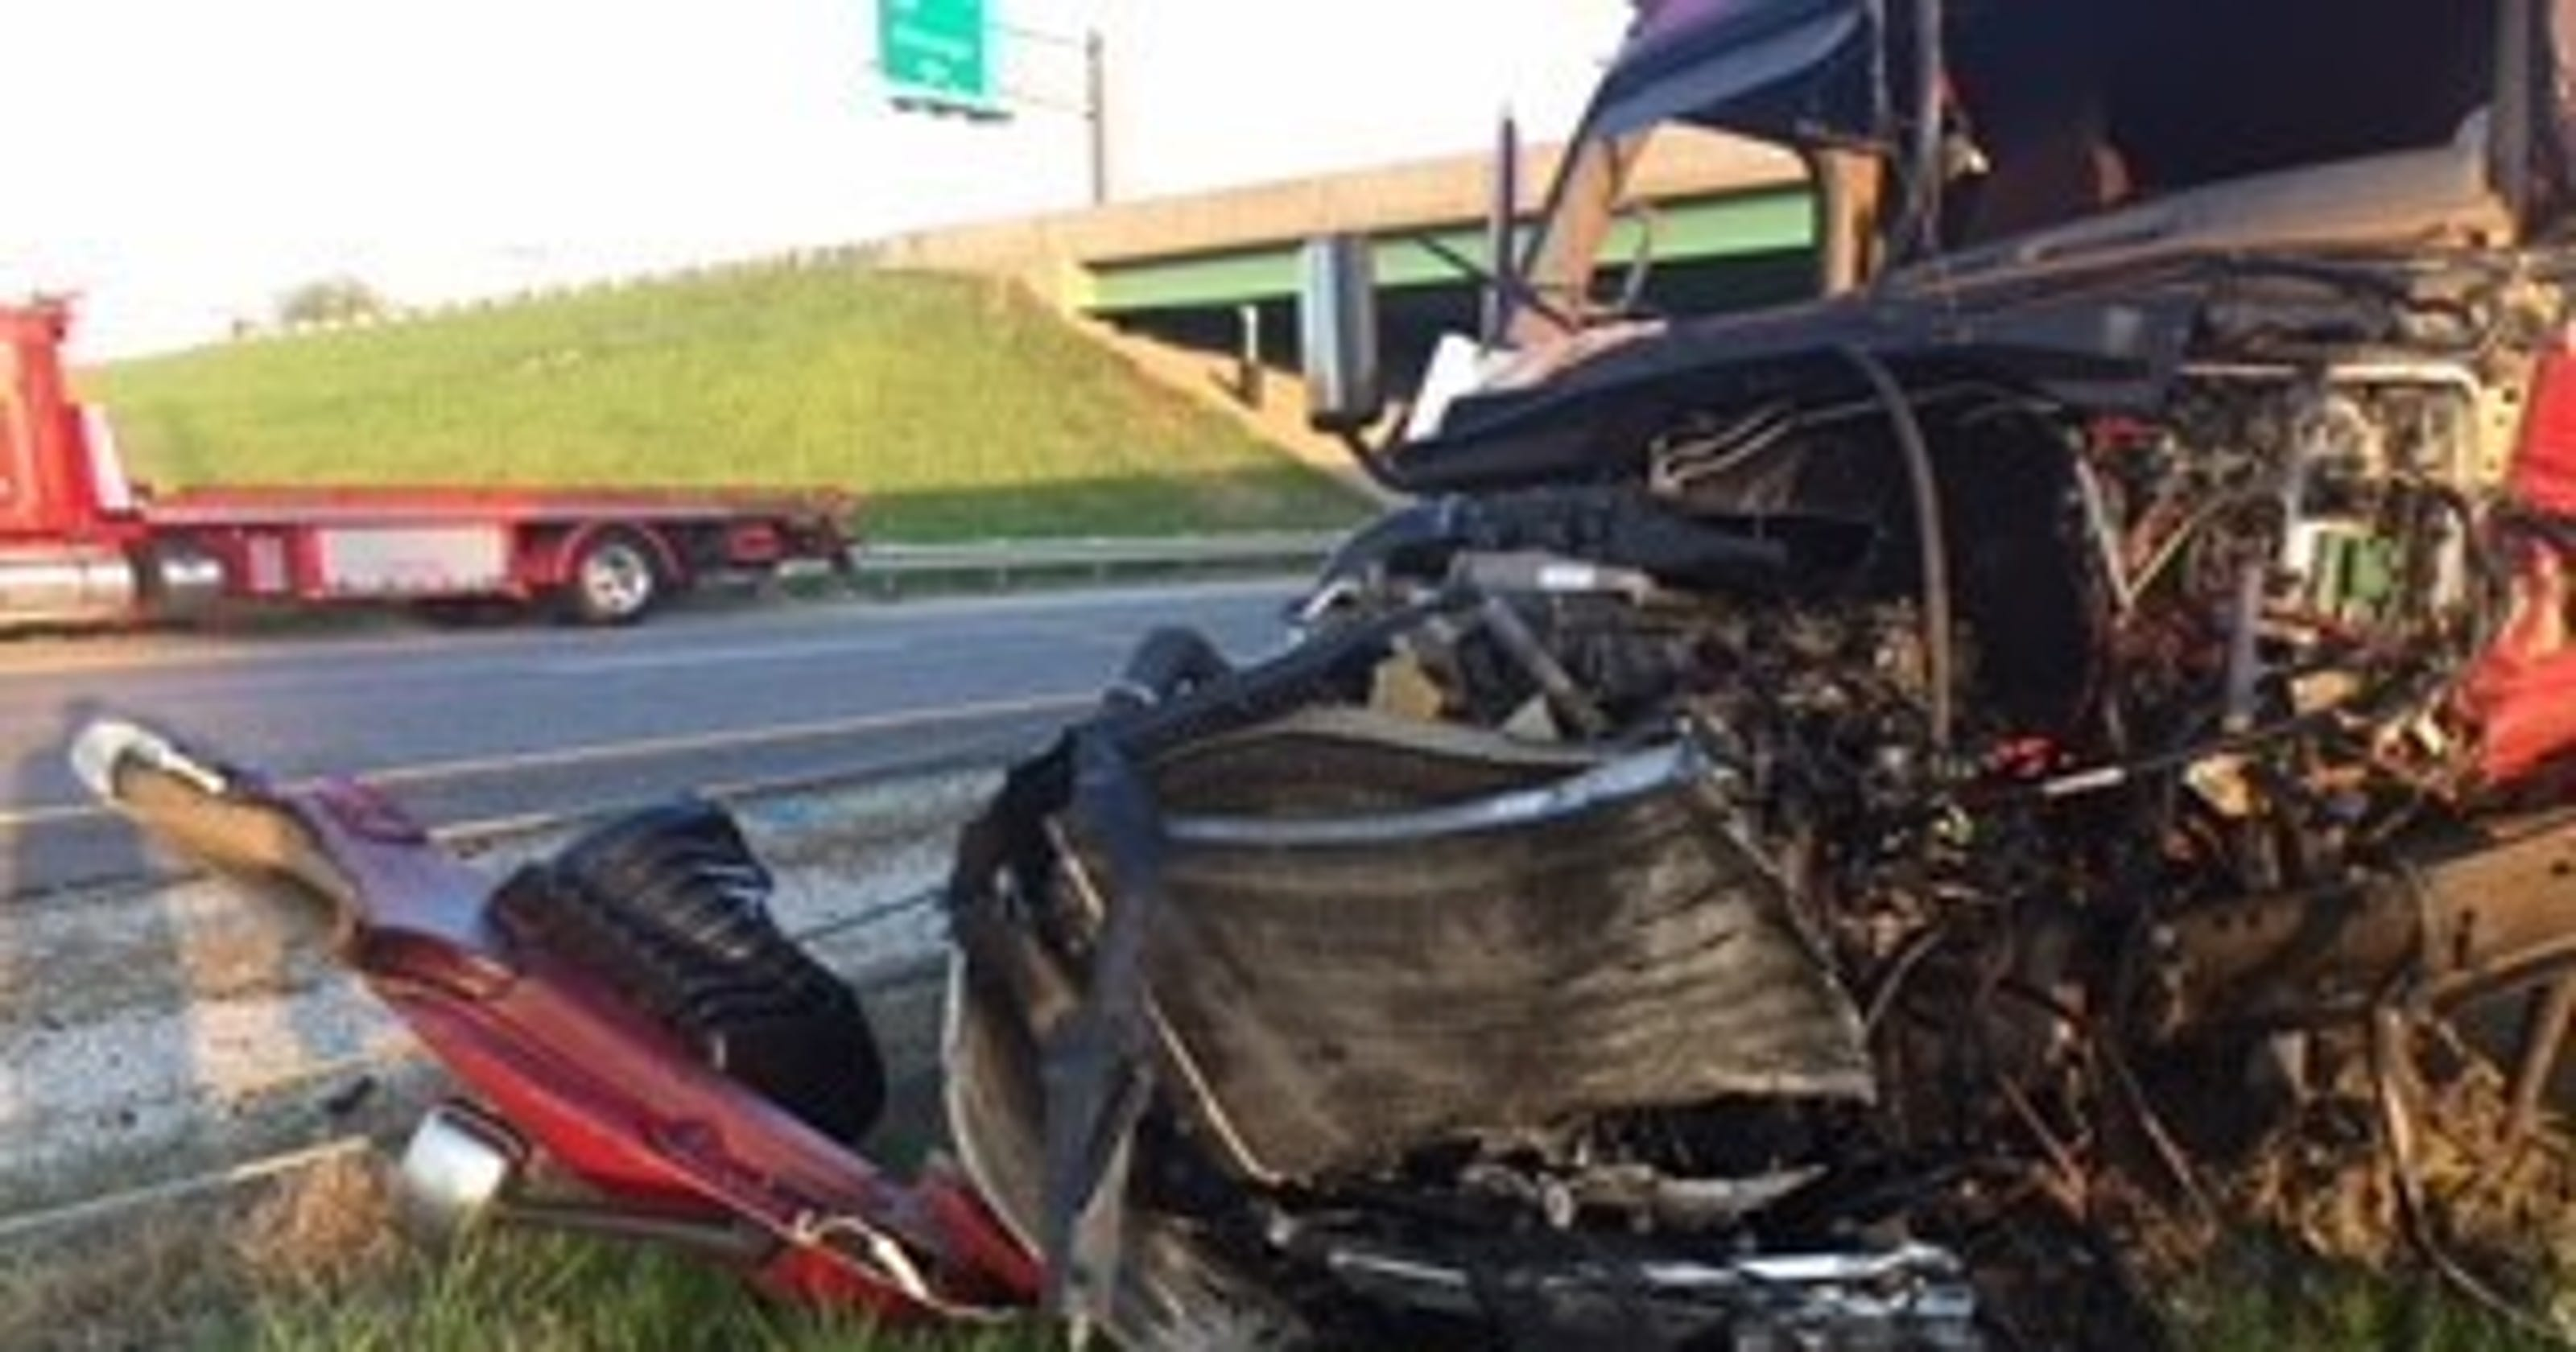 Interstate 65 crash in Rensselaer kills a 59-year-old man